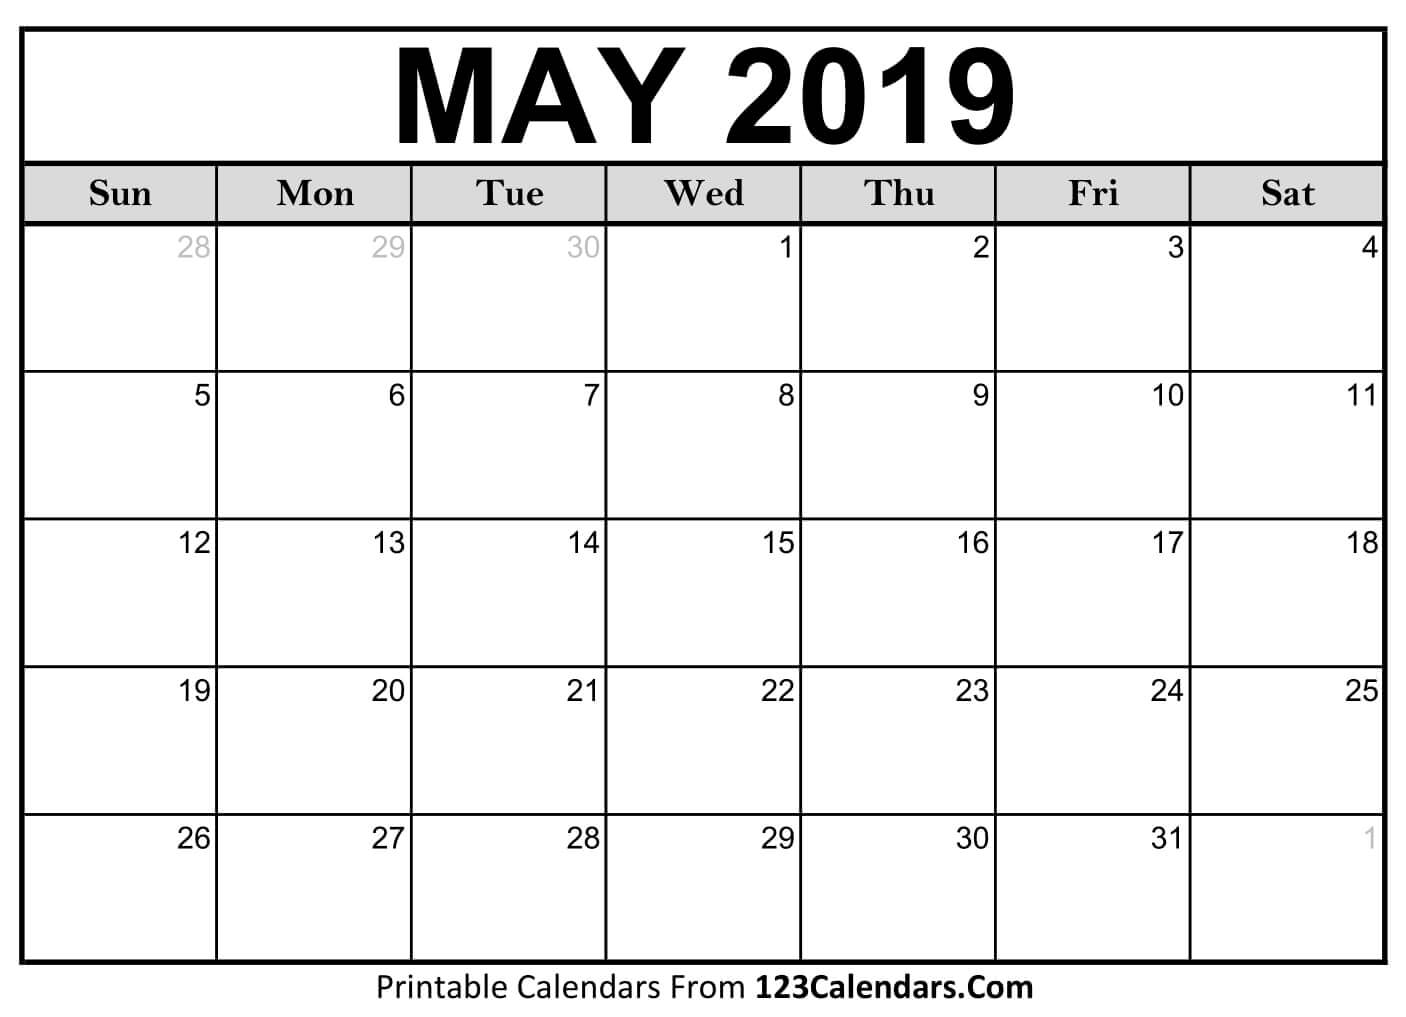 May 2019 Calendar Printable Holidays